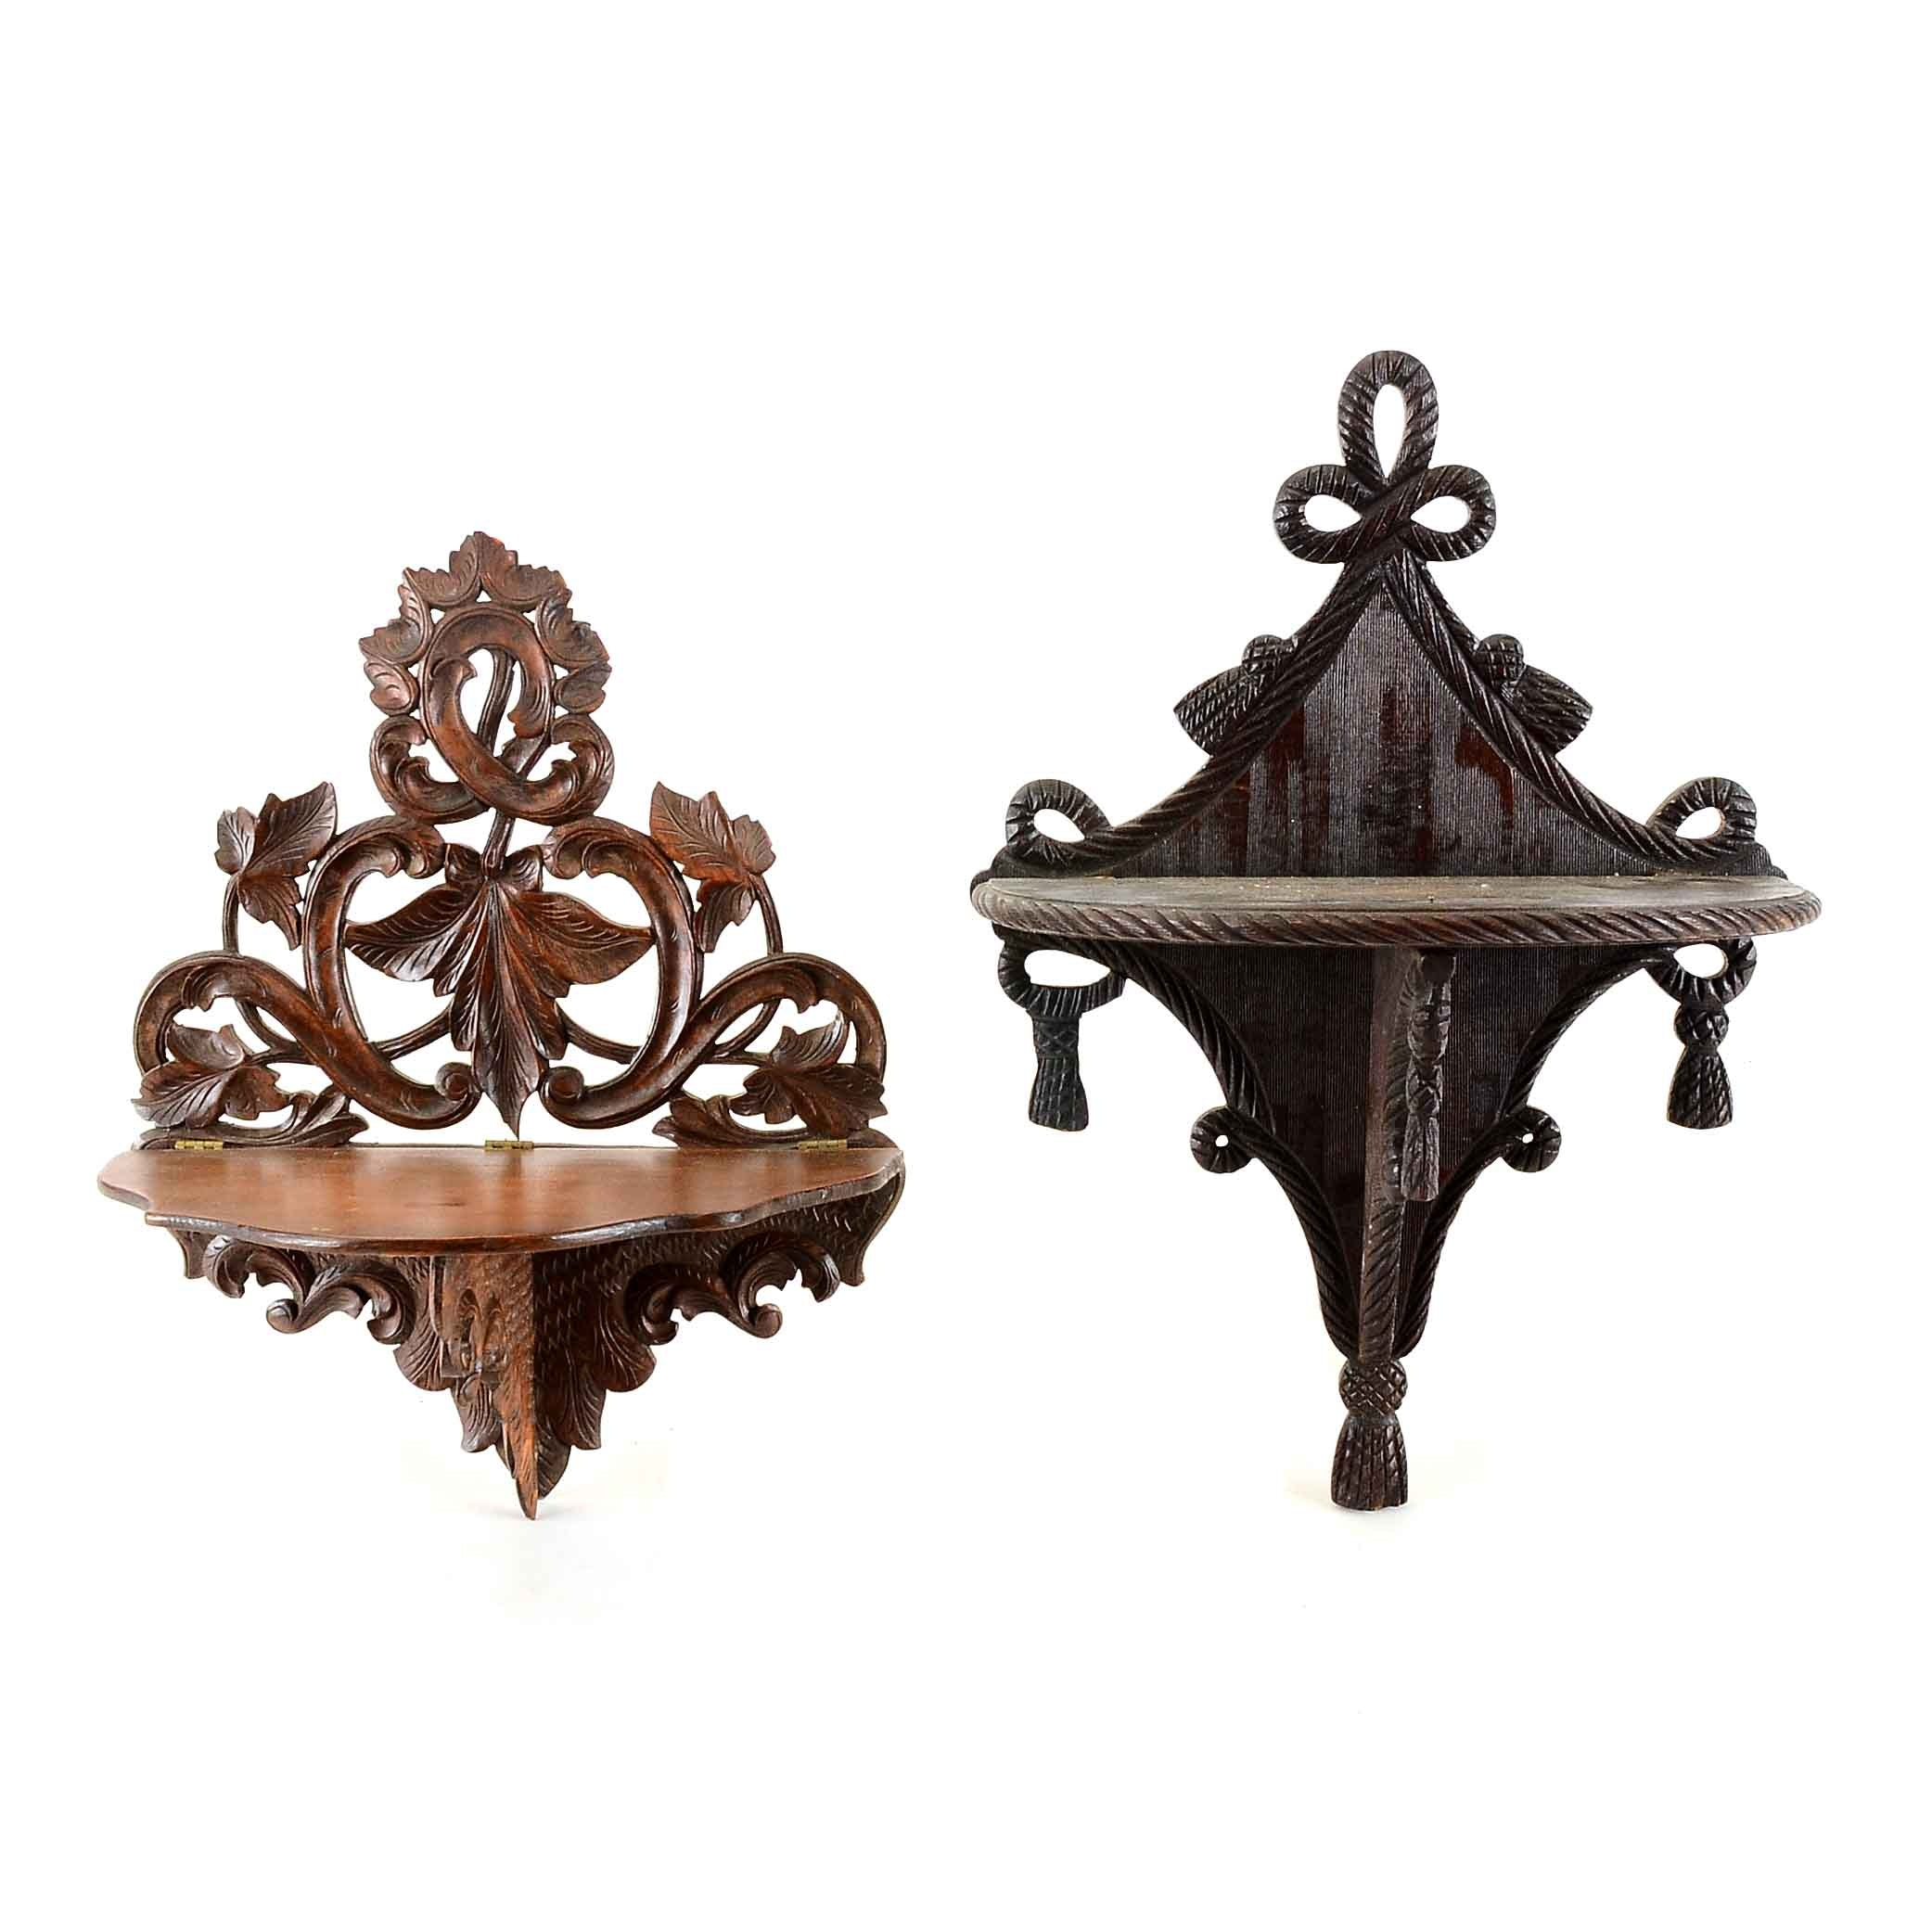 Two Carved Wood Wall Shelves